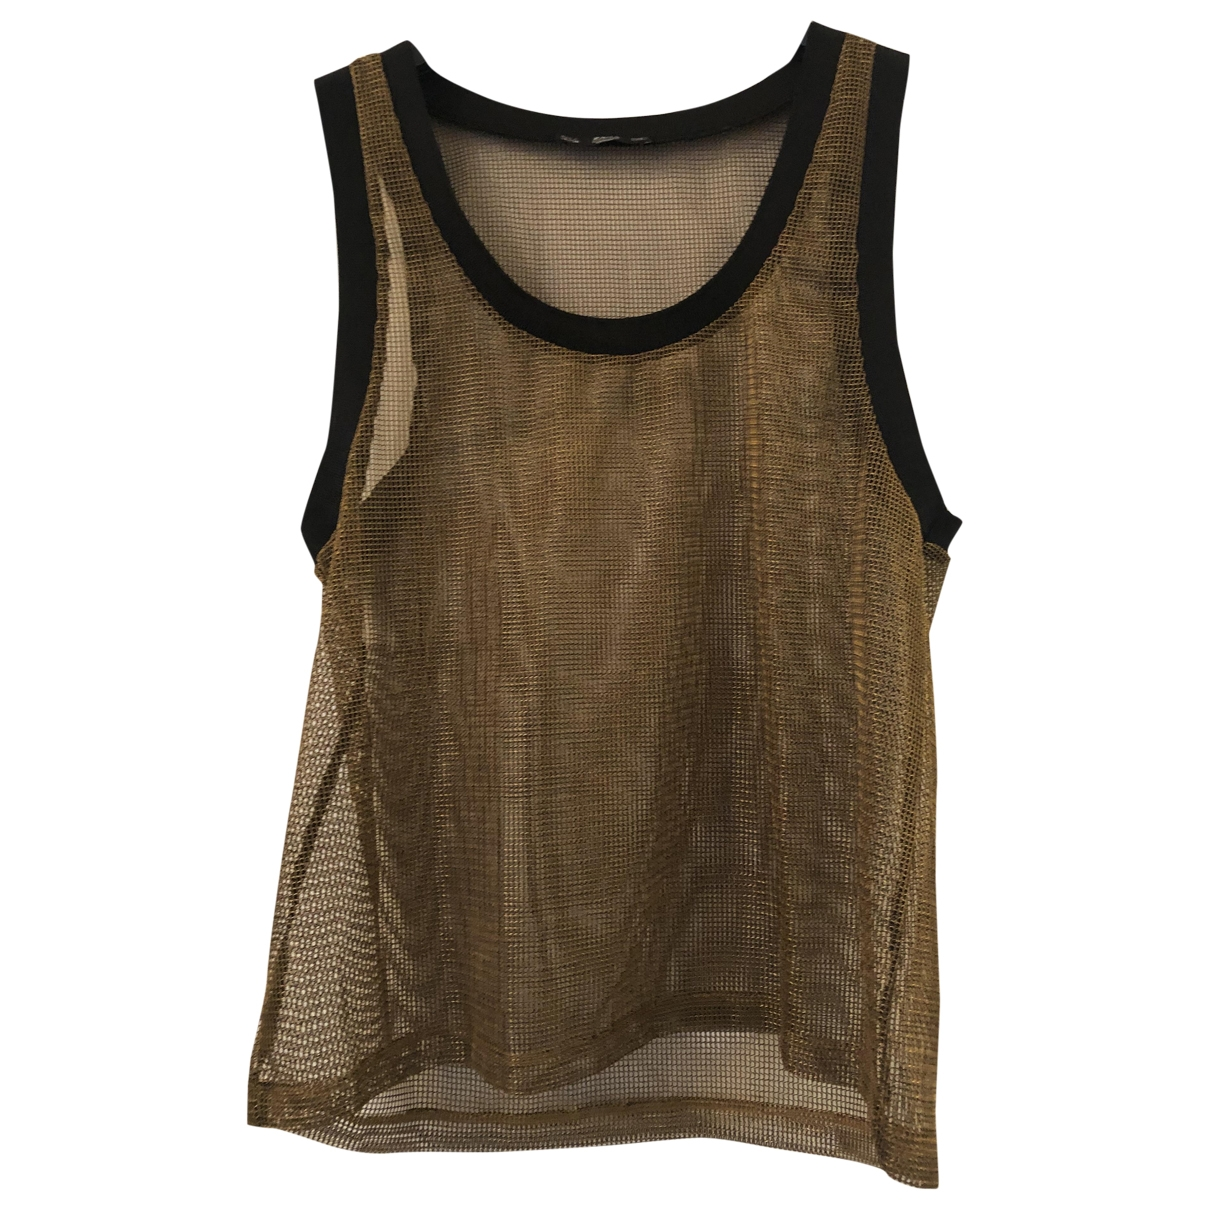 Zara \N Gold  top for Women XS International